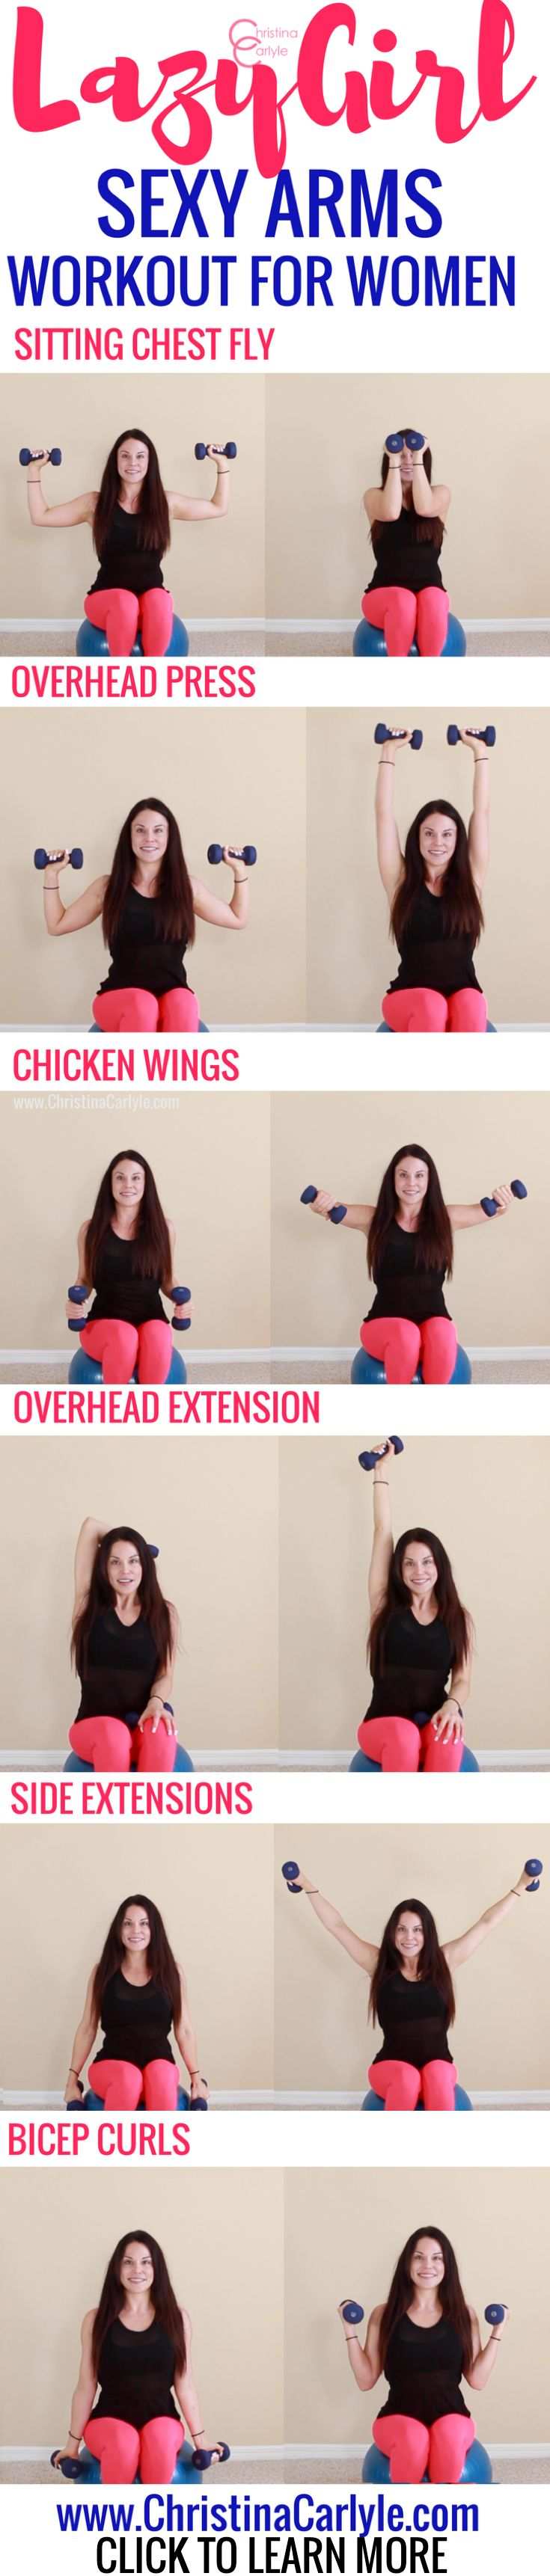 This lazy girl workout is perfect for days when you know you need to workout but just don't feel like it.  You can easily do these sitting down but they're really effective exercises for the arms.  So you can be lazy and still work on toning your arms at